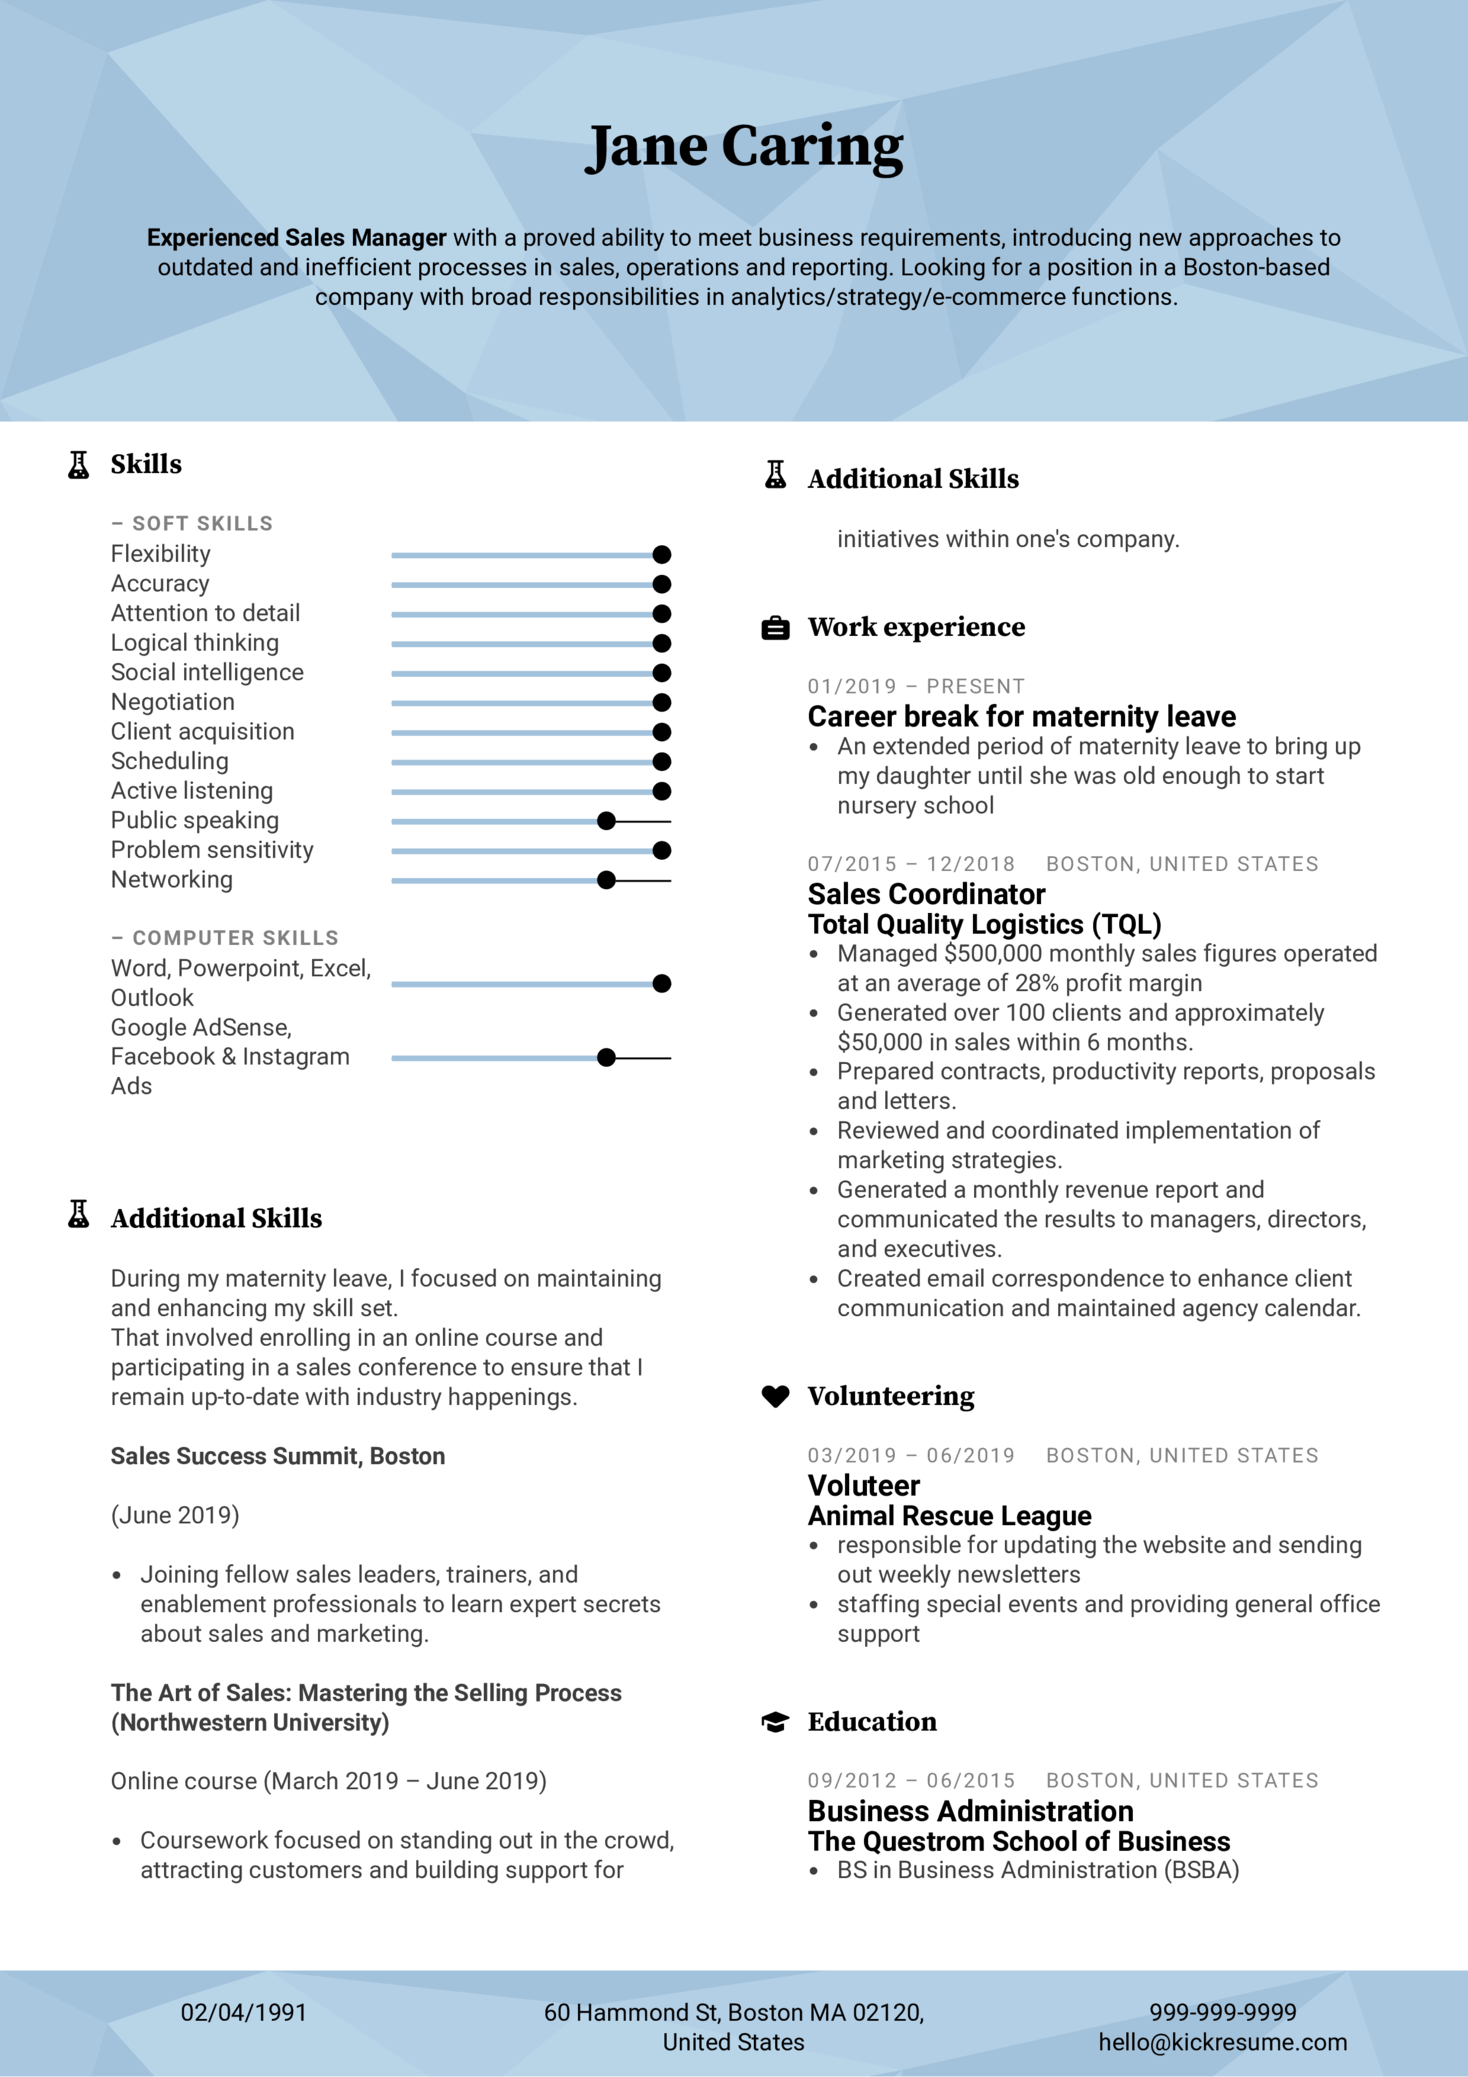 Maternity Leave Sales Manager Resume Sample (Part 1)